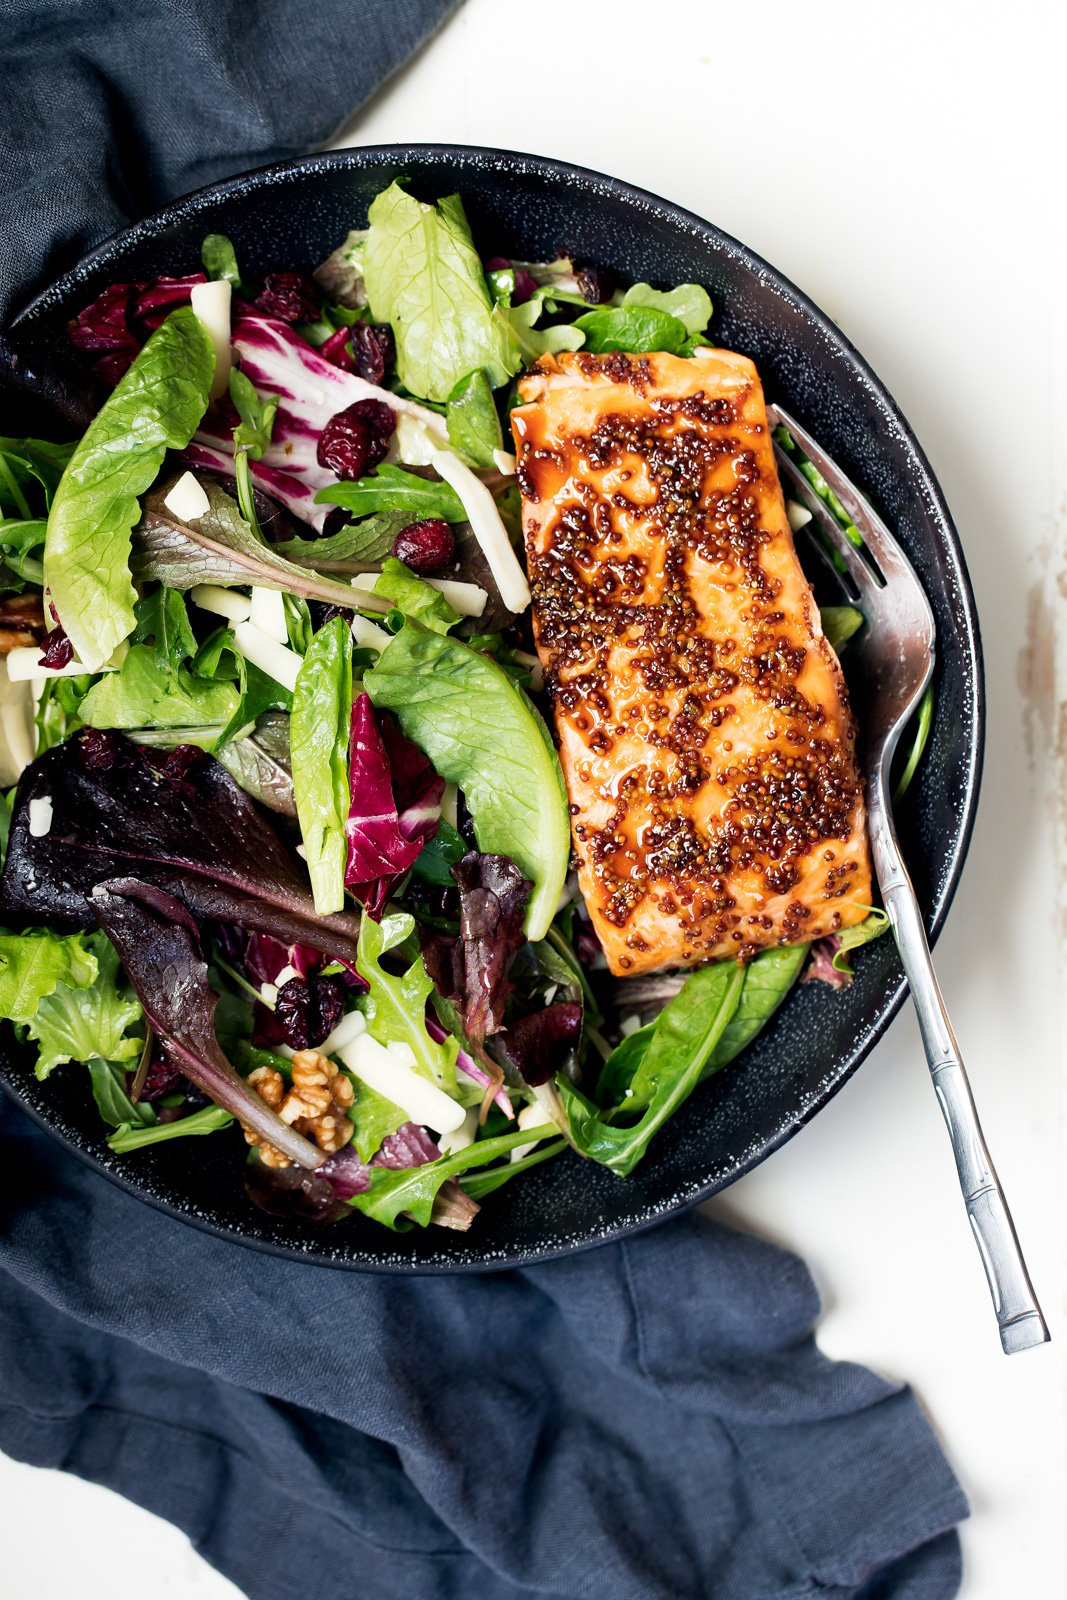 Flavorful delicious easy salmon with a garlic honey dijon marinade. You need this in your life!